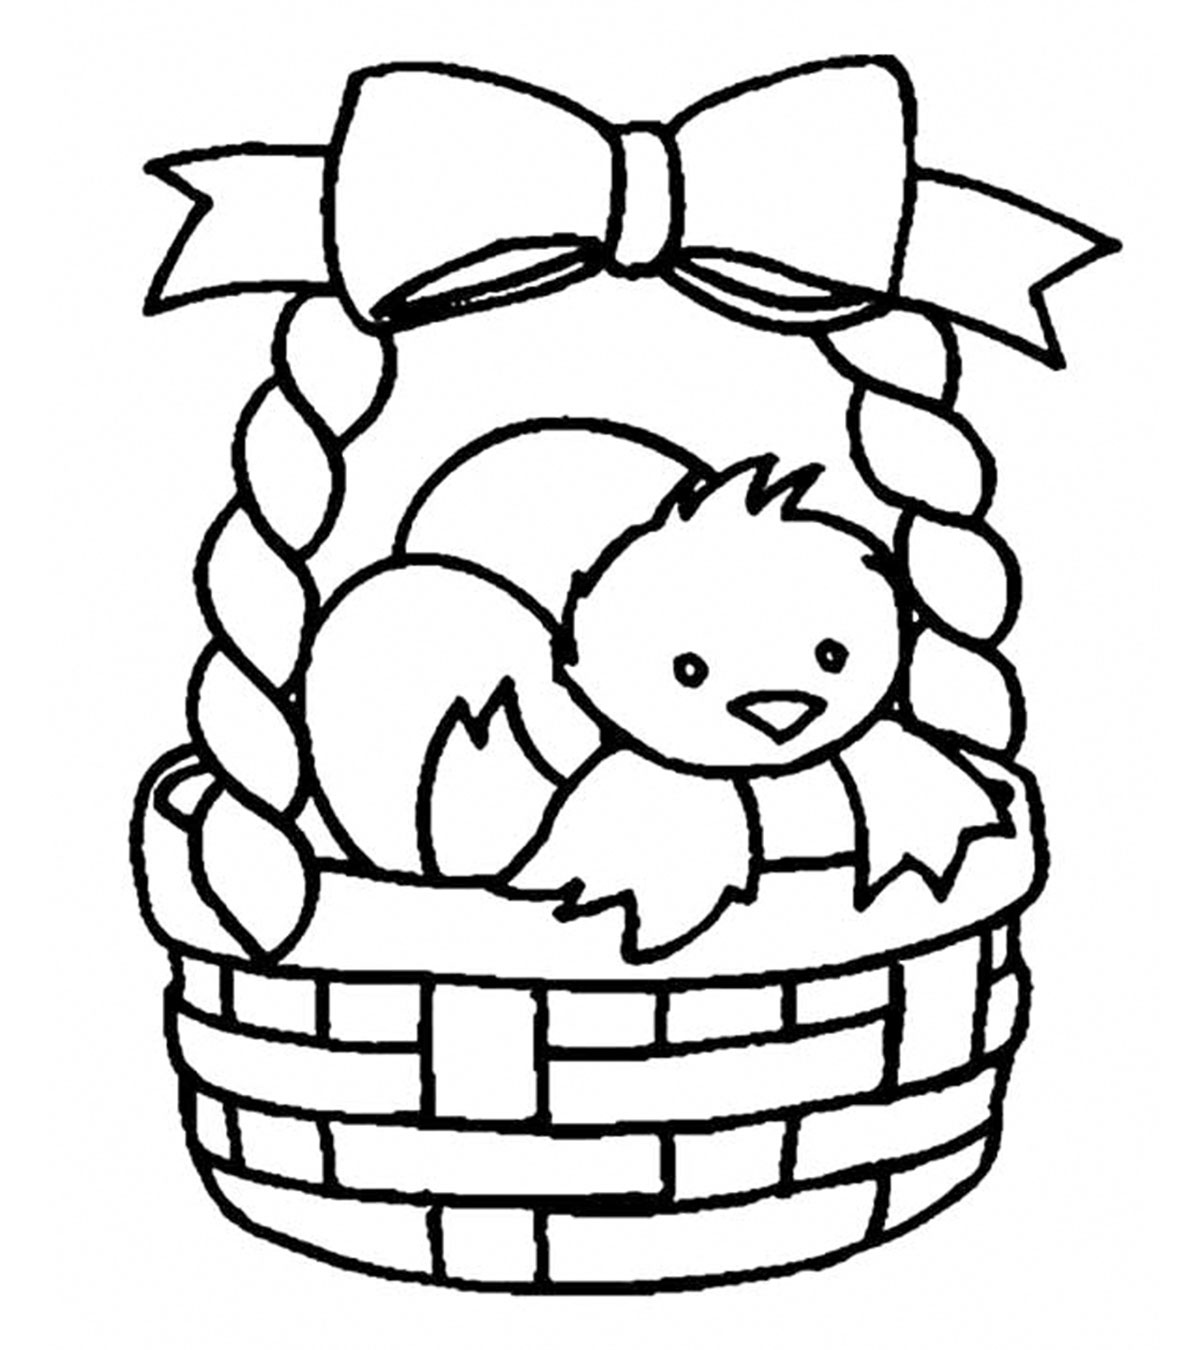 - Top 10 Free Printable Easter Basket Coloring Pages Online